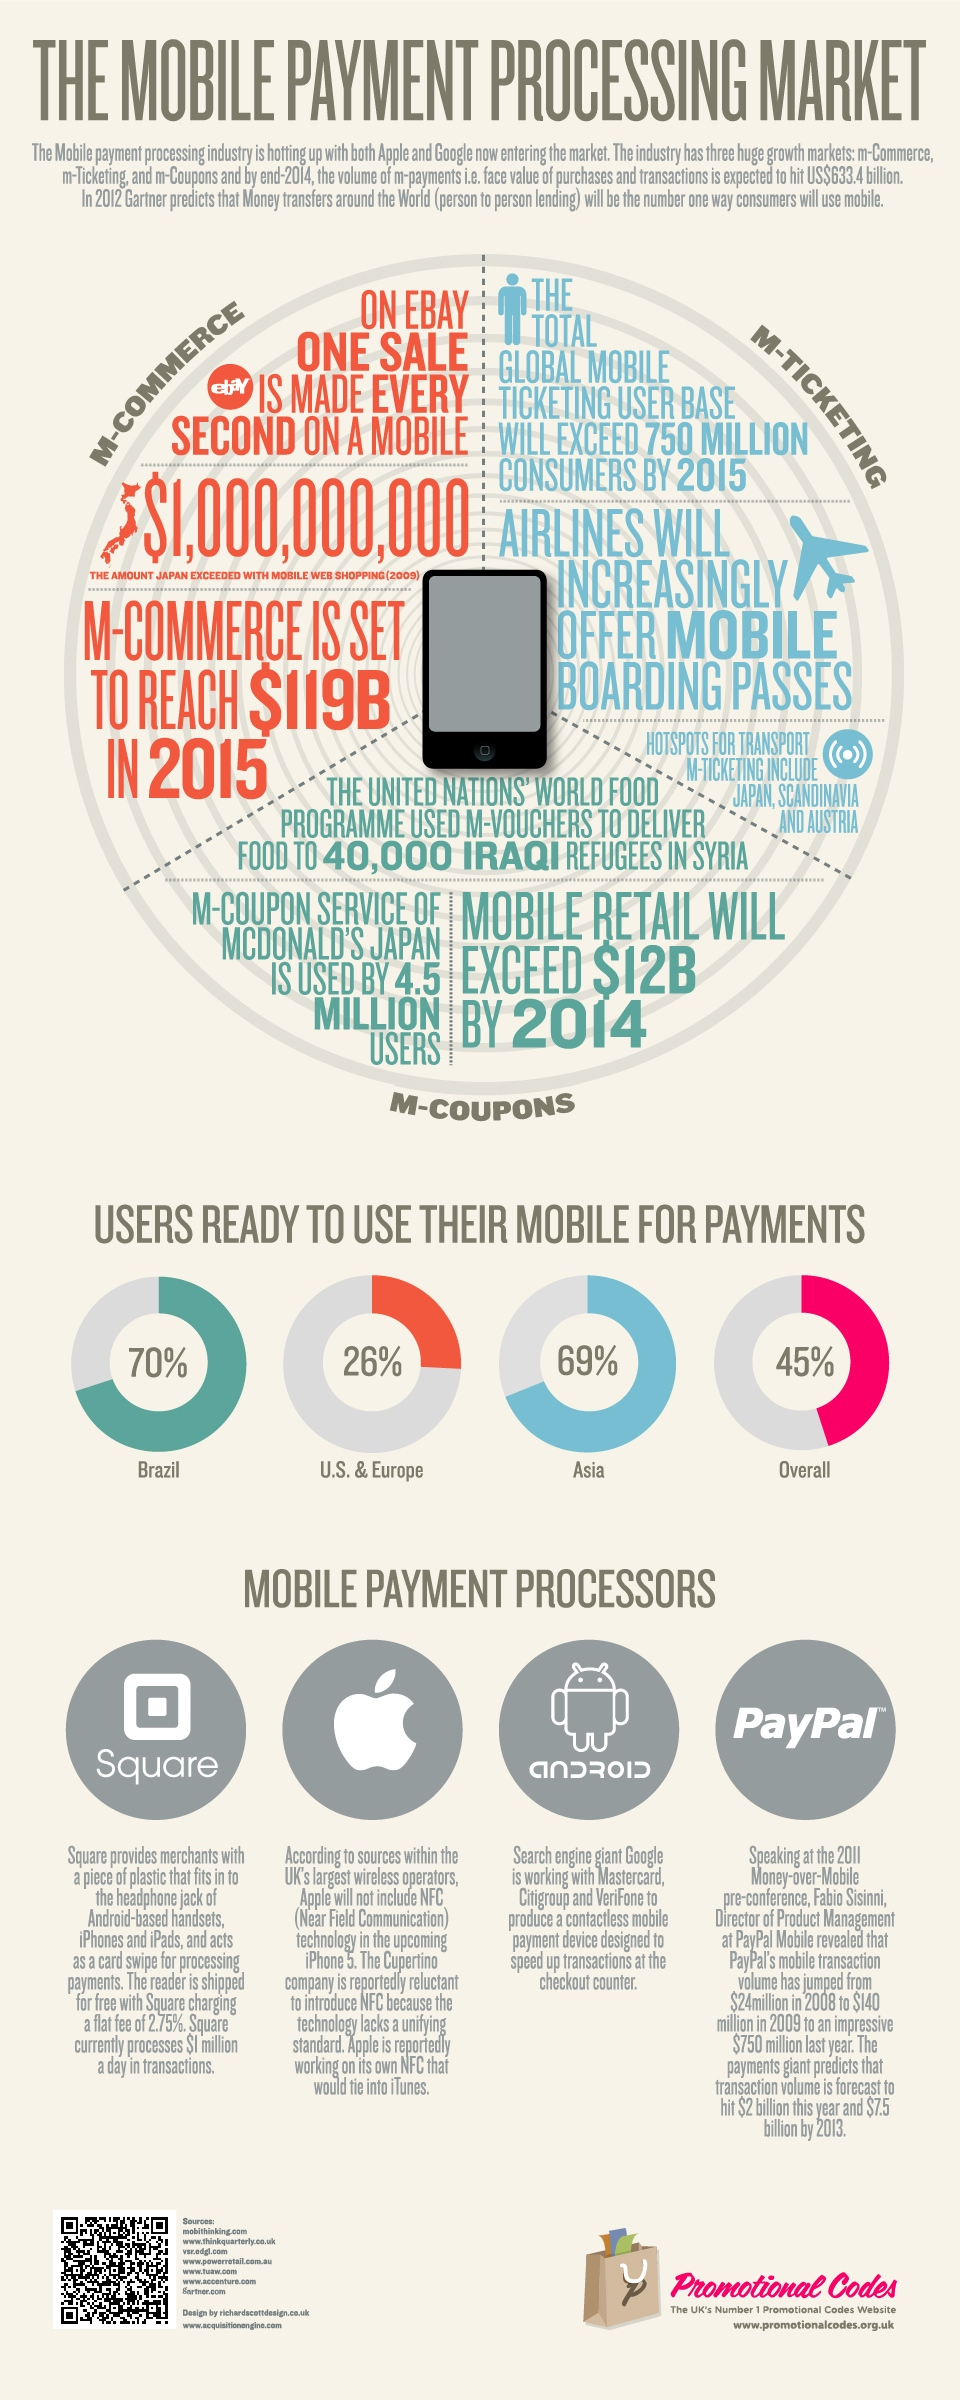 A look into M-Commerce, m-Ticketing and m-Coupons